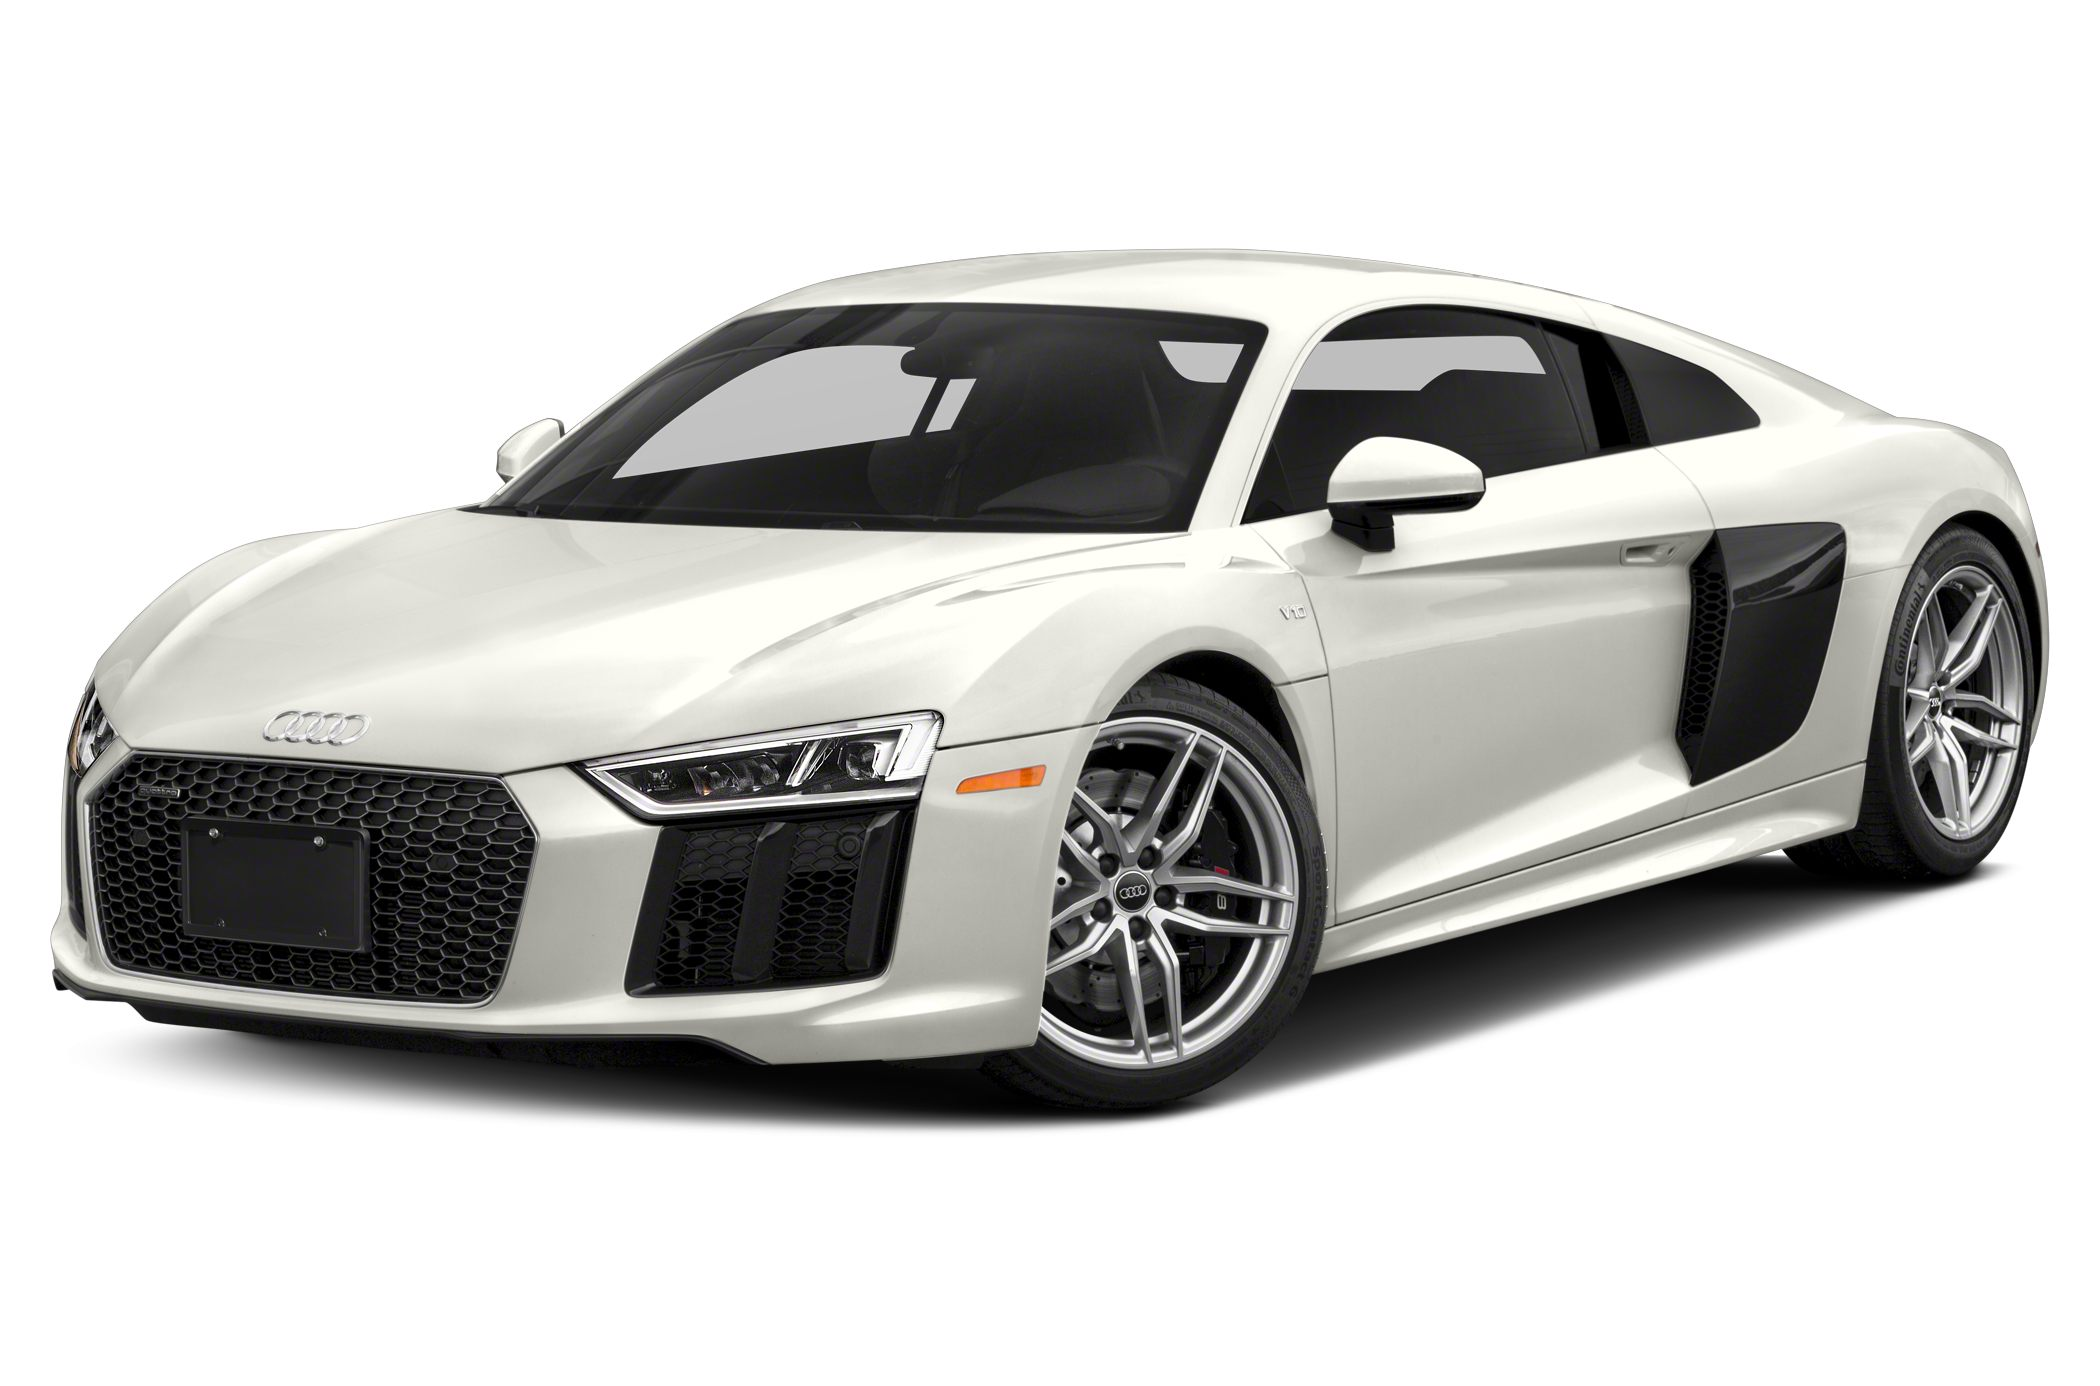 2018 Audi R8 Coupe | Price & Specs | Audi USA